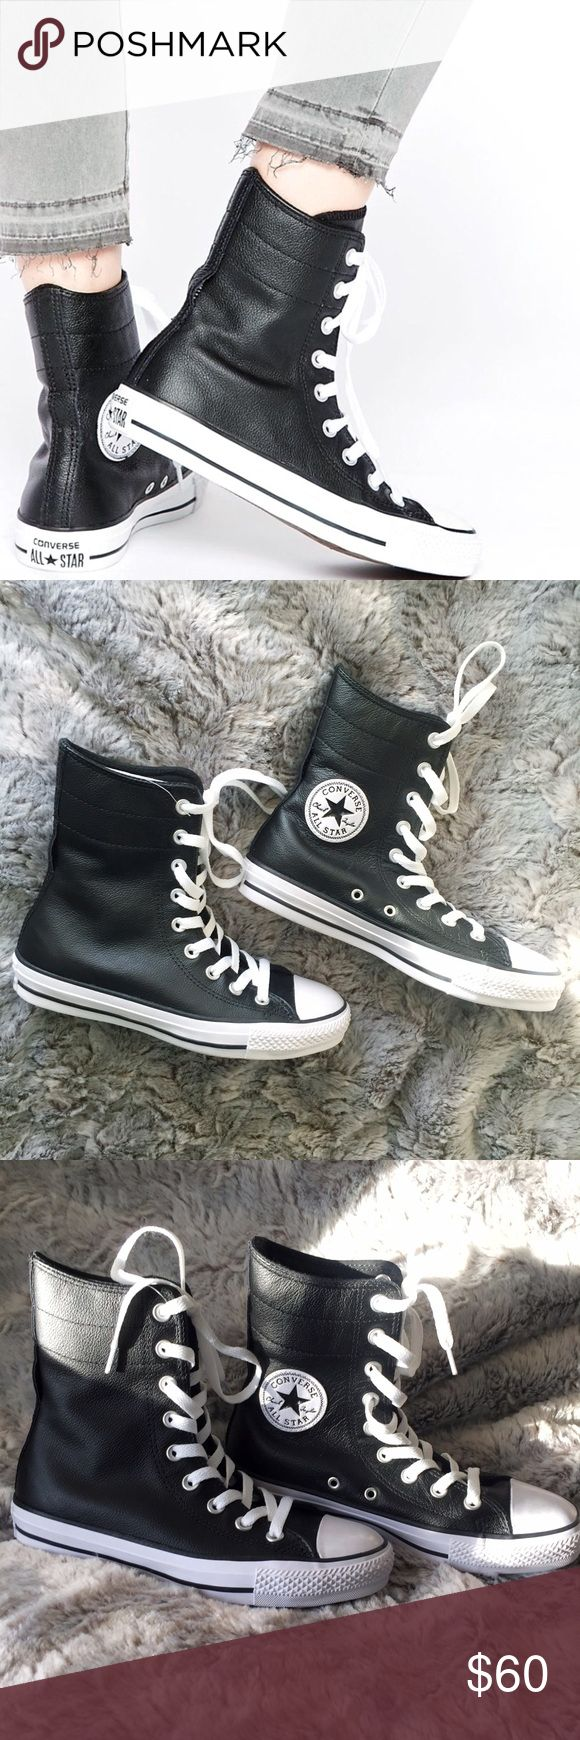 Converse Chuck Taylor Leather Hi Rise Sneakers Brand new without tags or box, women's size 6.5. These Converse Chuck Taylor Hi Rise Sneakers are made with a gorgeous black leather. Easy to pair with any outfit! You can lace these all the way up, or wrap the laces  midway through the loop in the back. Converse Other